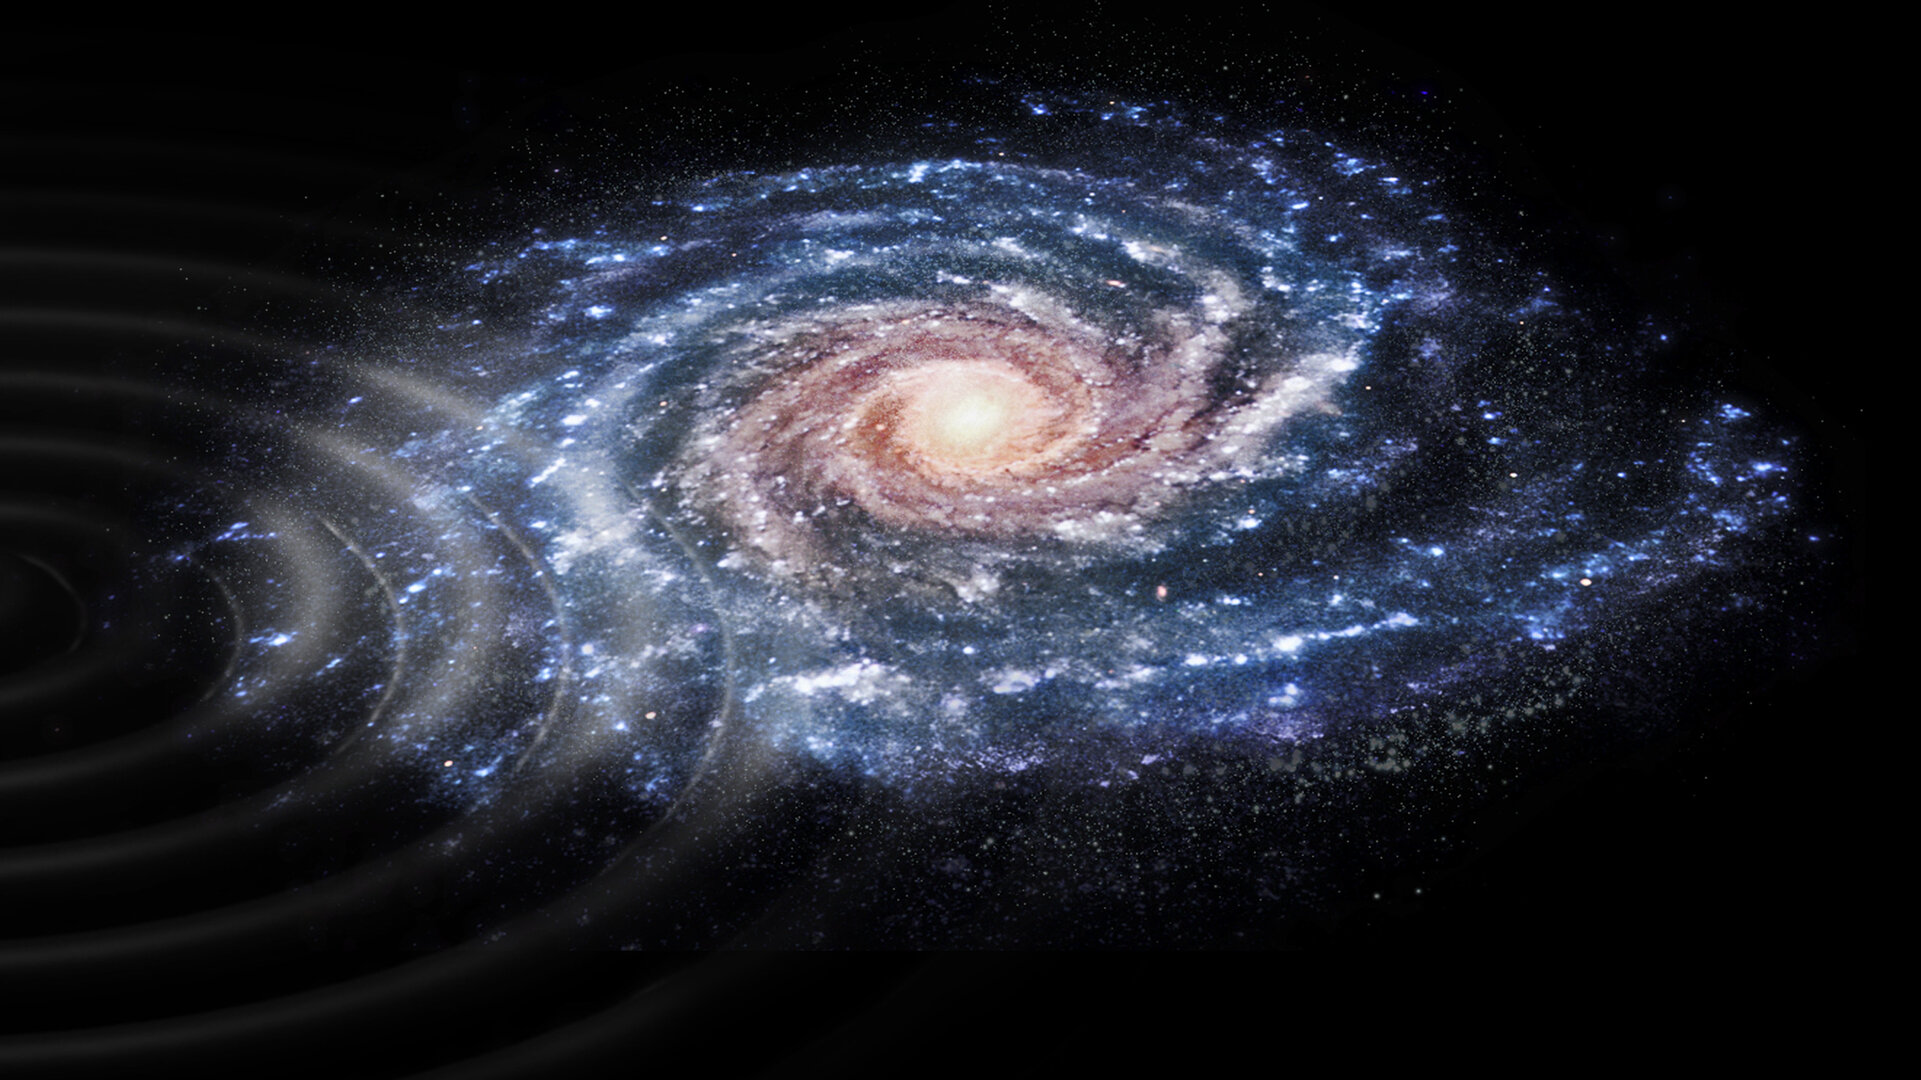 Perturbations in the Milky Way